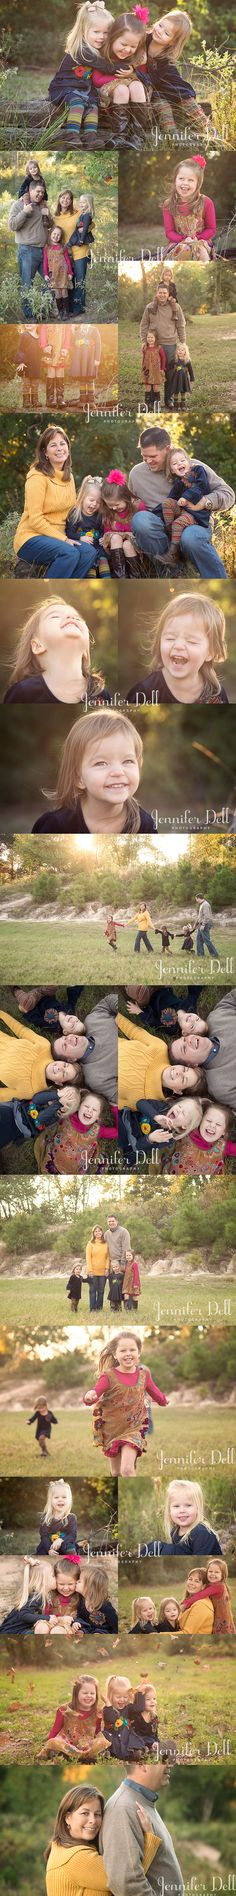 © Jennifer Dell Photography | 2012    houston-family-photography